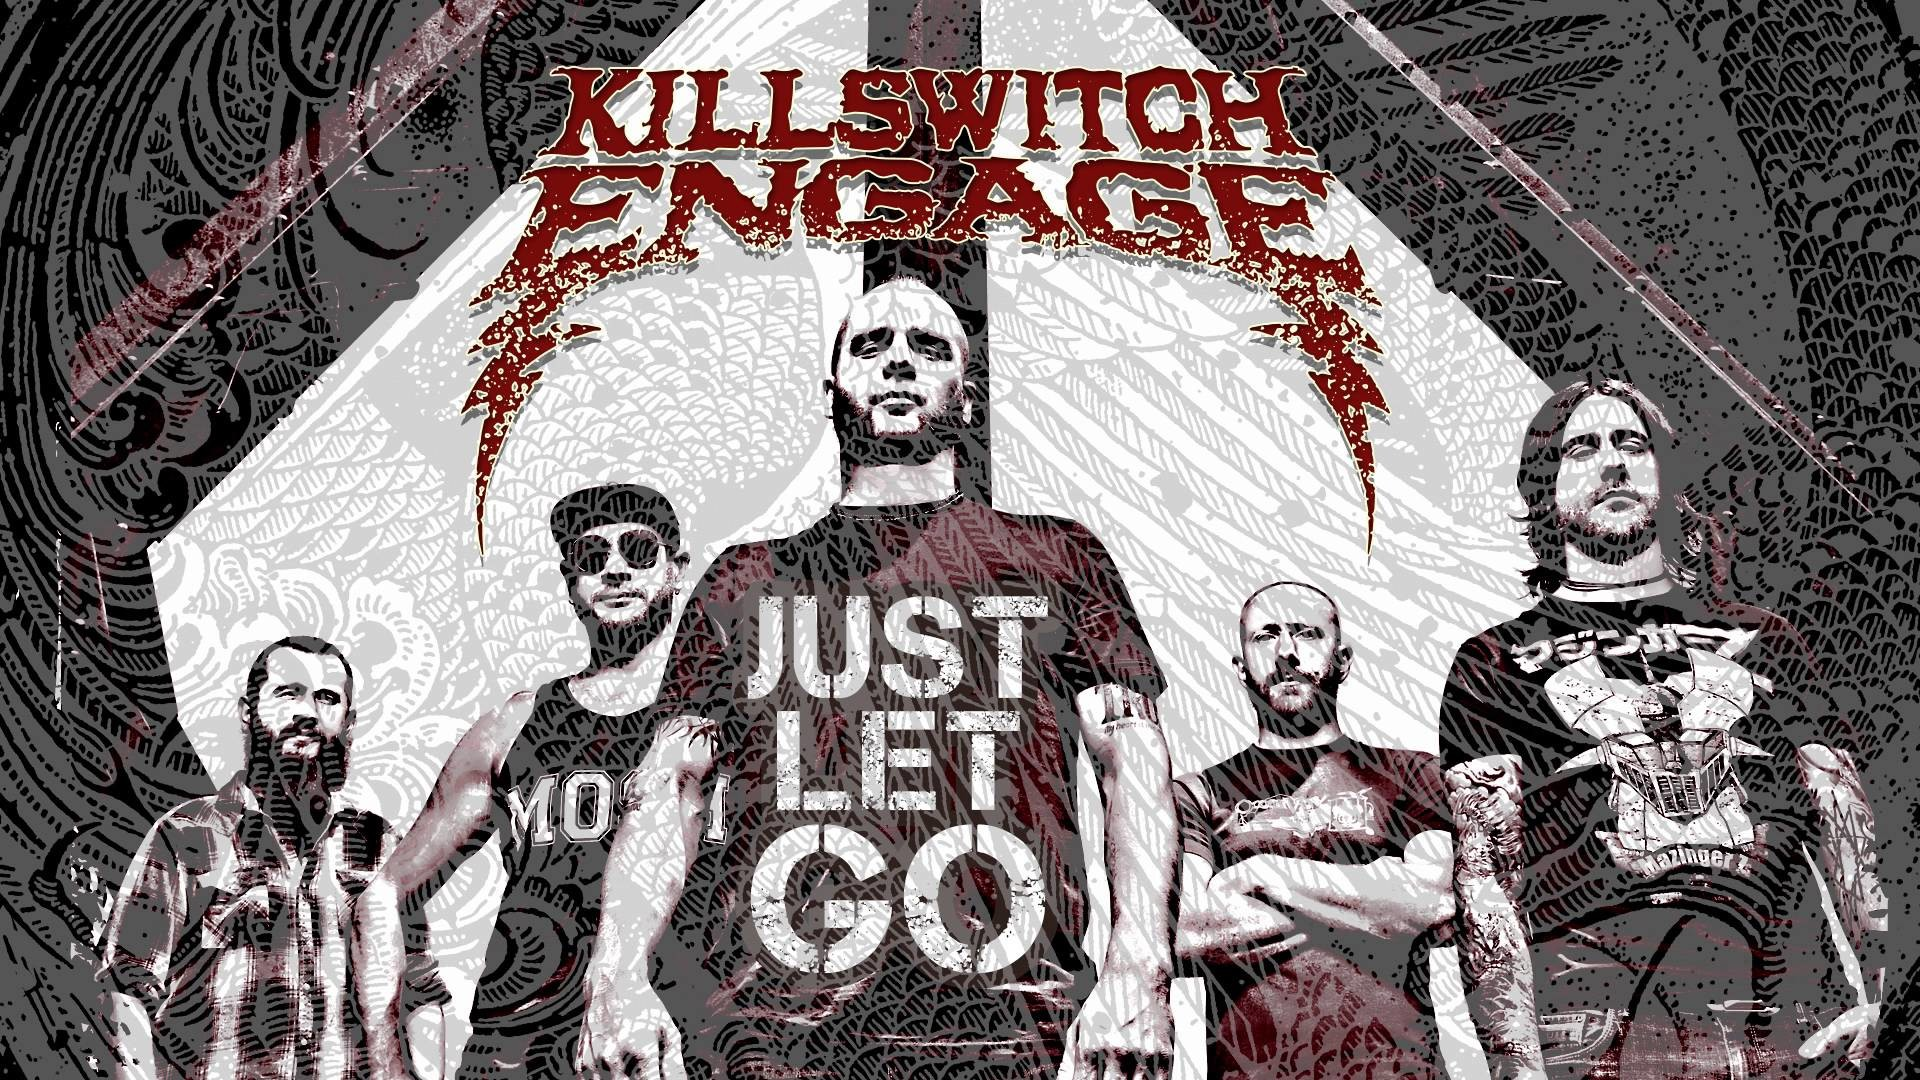 Killswitch engage album download free | Killswitch Engage's Albums